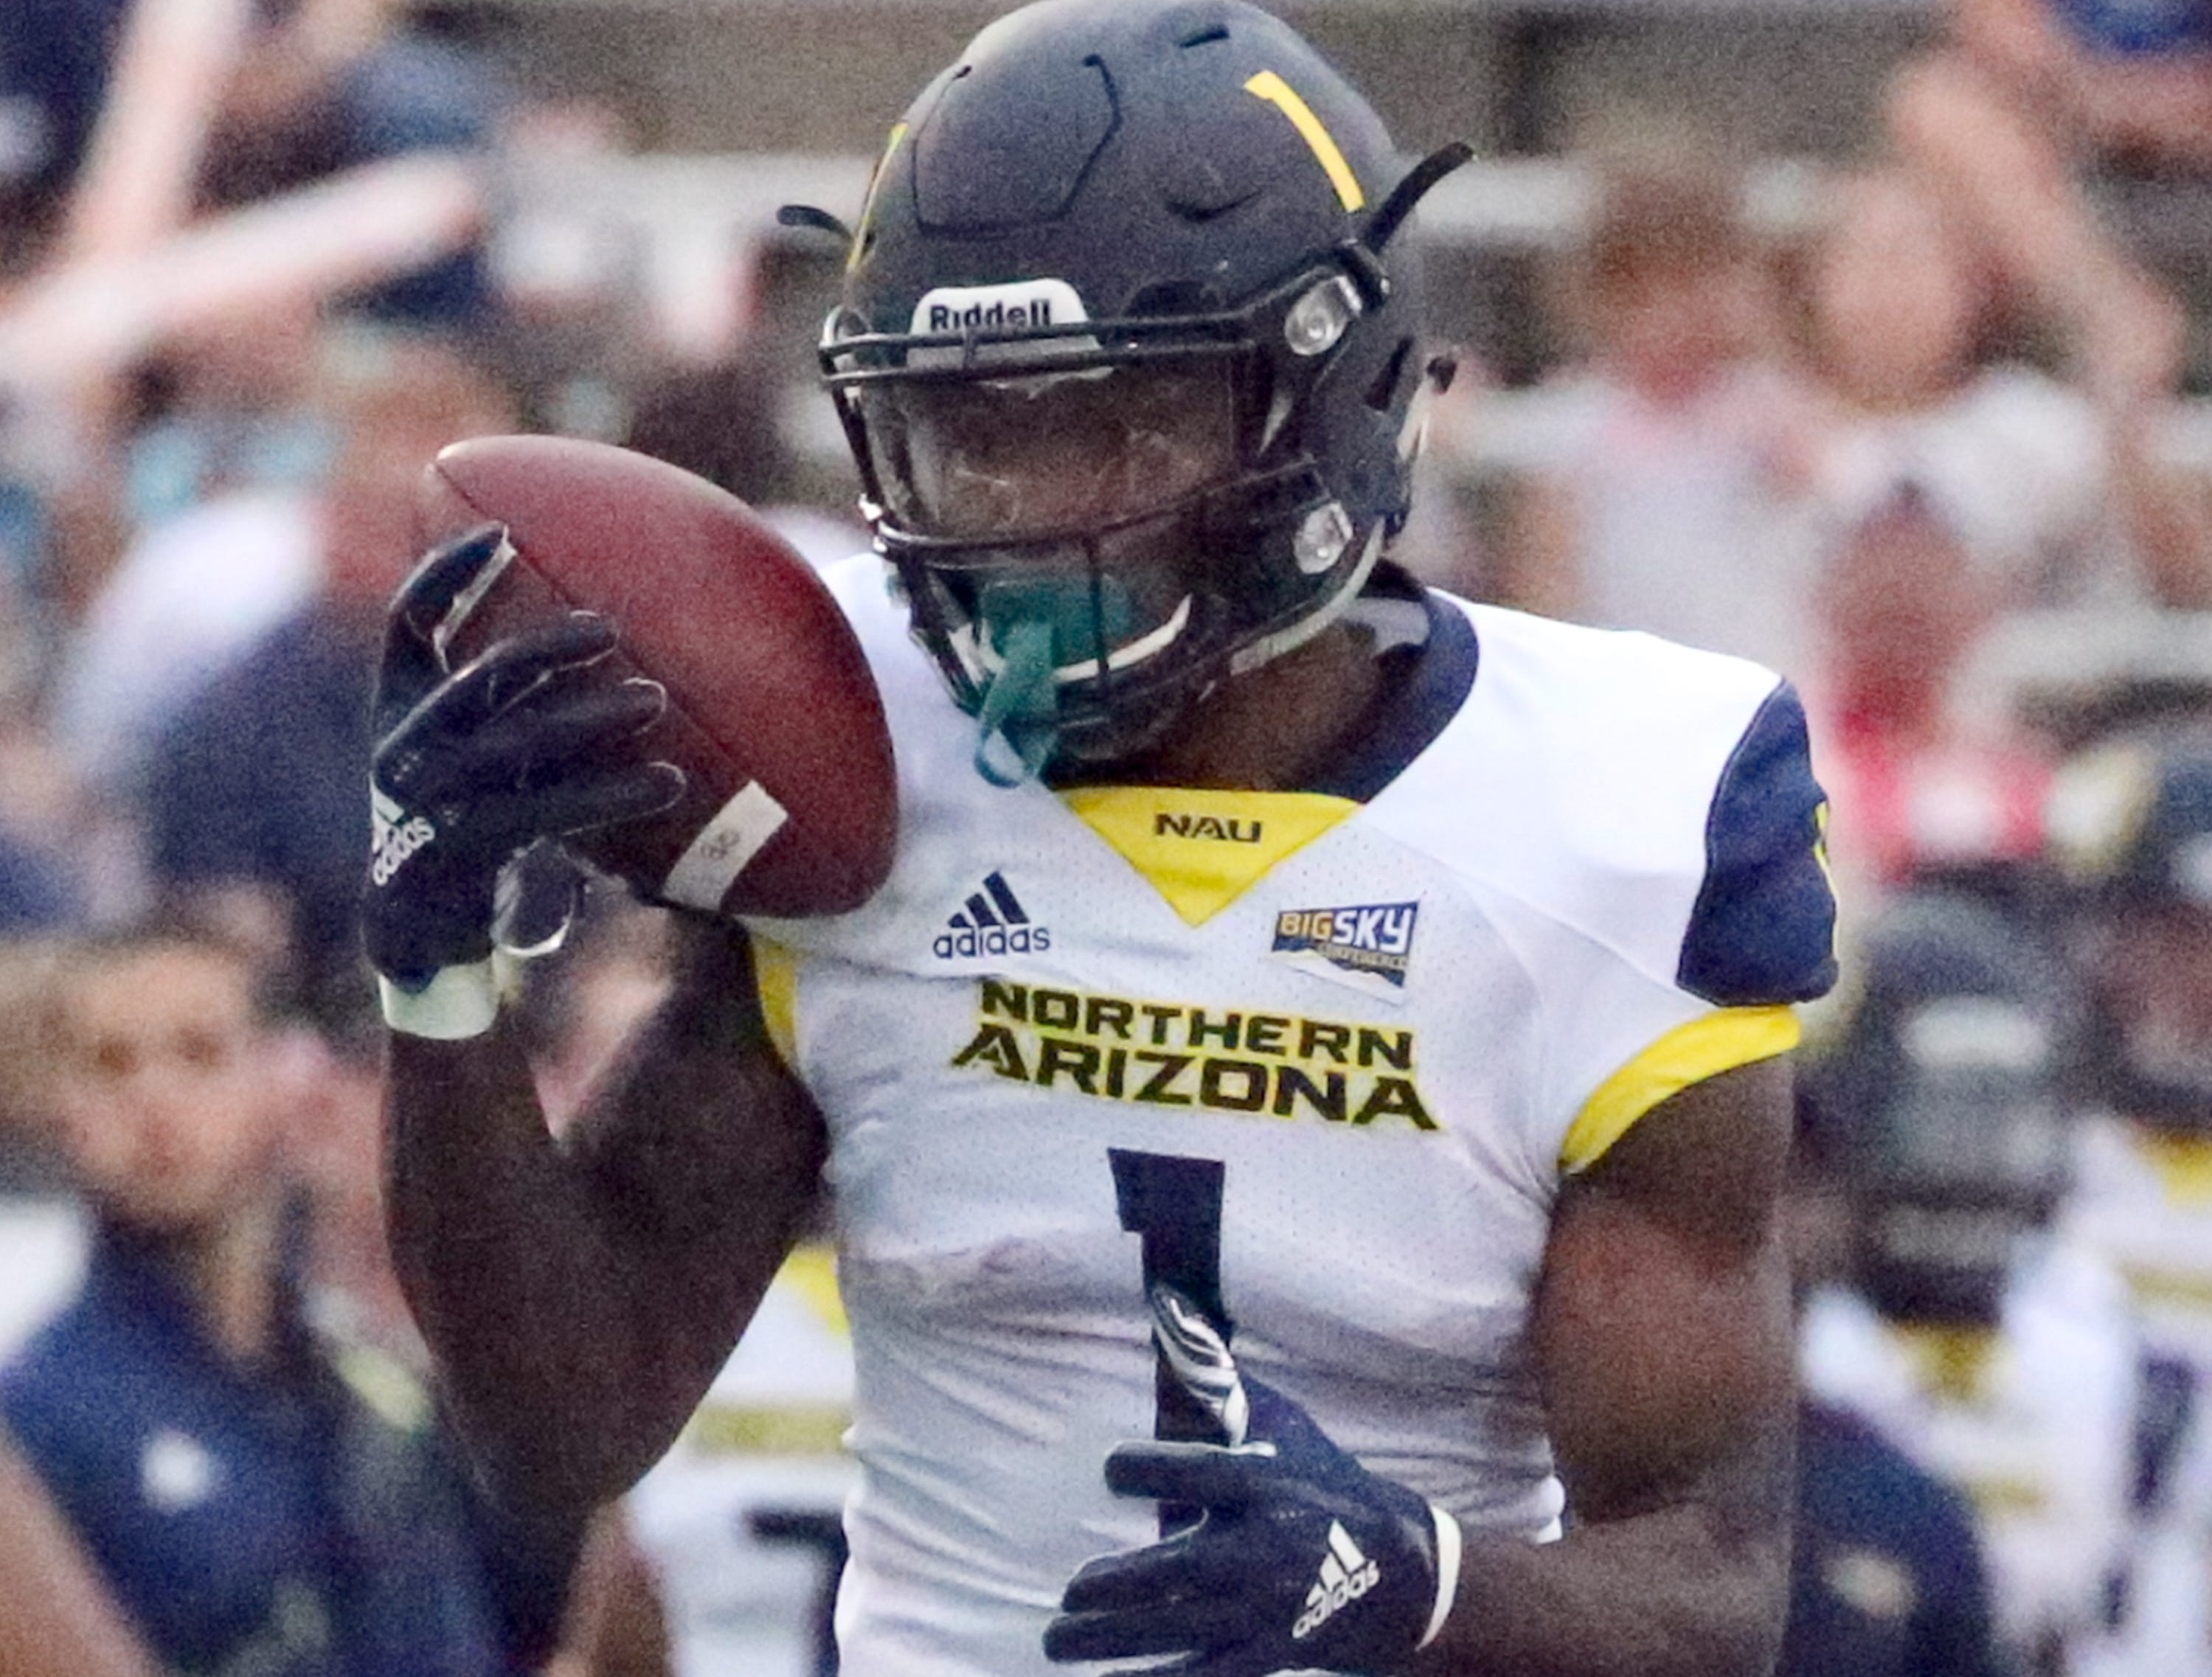 Northern Arizona wide receiver Emmanuel Butler manages to hold on to a throw before sprinting into the end zone for the Lumberjacks' second touchdown against UTEP Saturday night.